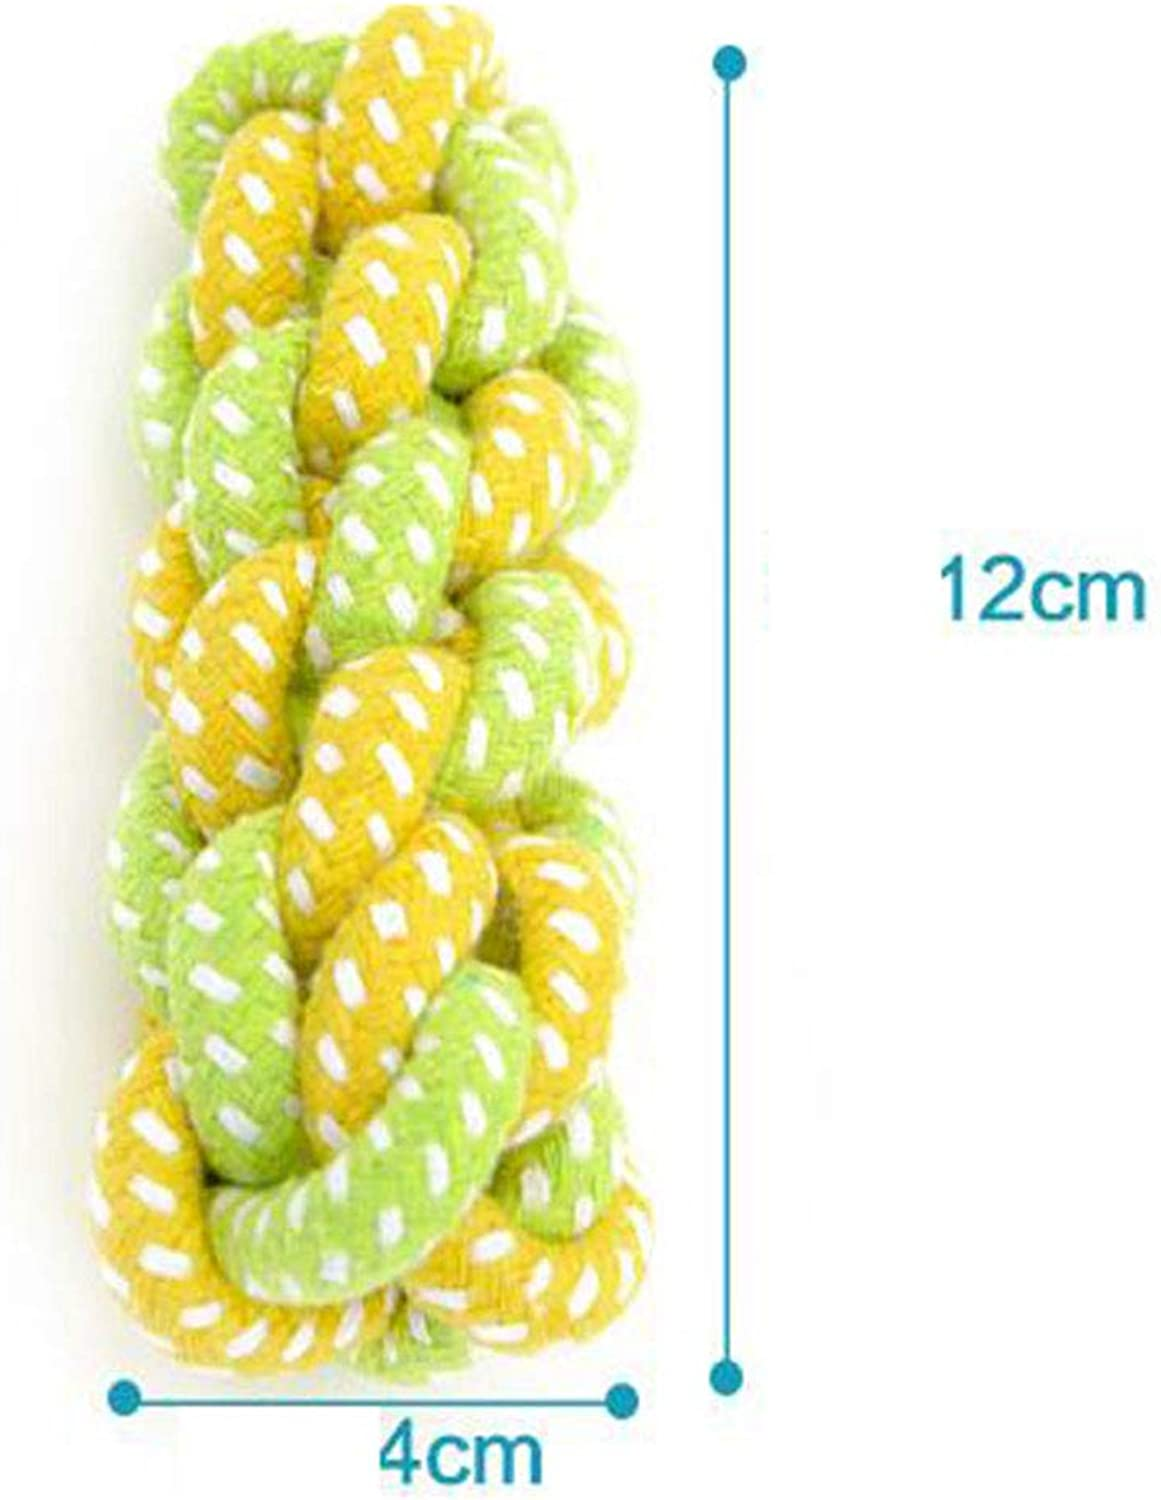 Dog Toy, Dog bite Rope Cotton Rope Molar Knot Toy Ball goldenhair Teddy Pomeranian Puppy Small Dog Toy Cotton Rope Toy,F